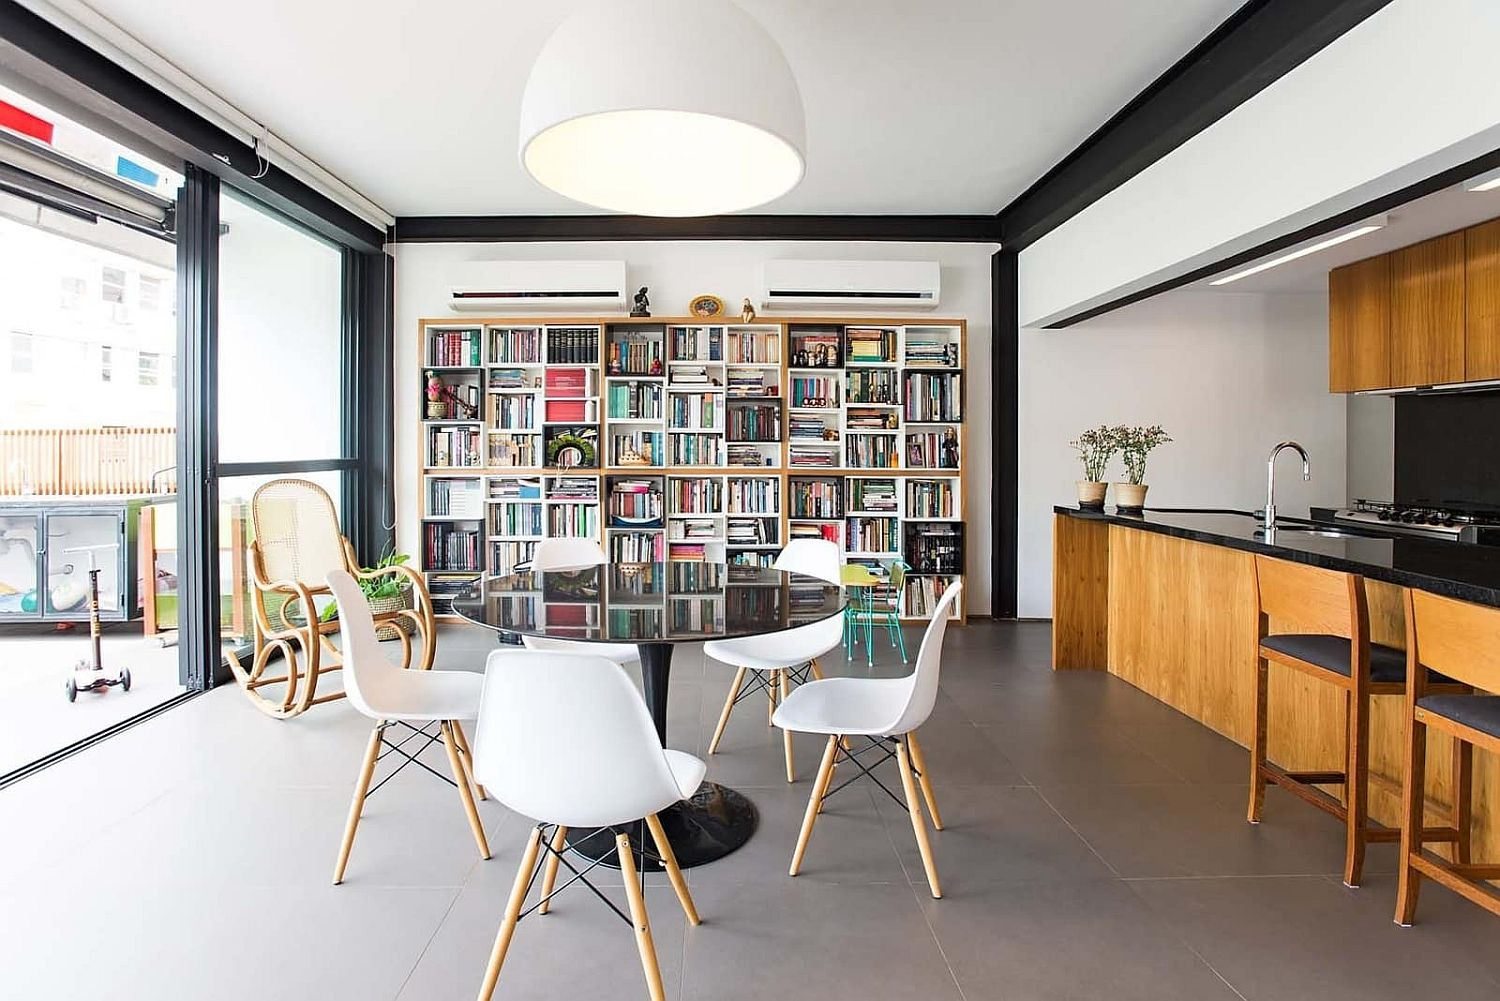 Make-sure-that-the-smart-bookshelf-fits-into-the-overall-style-of-the-small-living-room